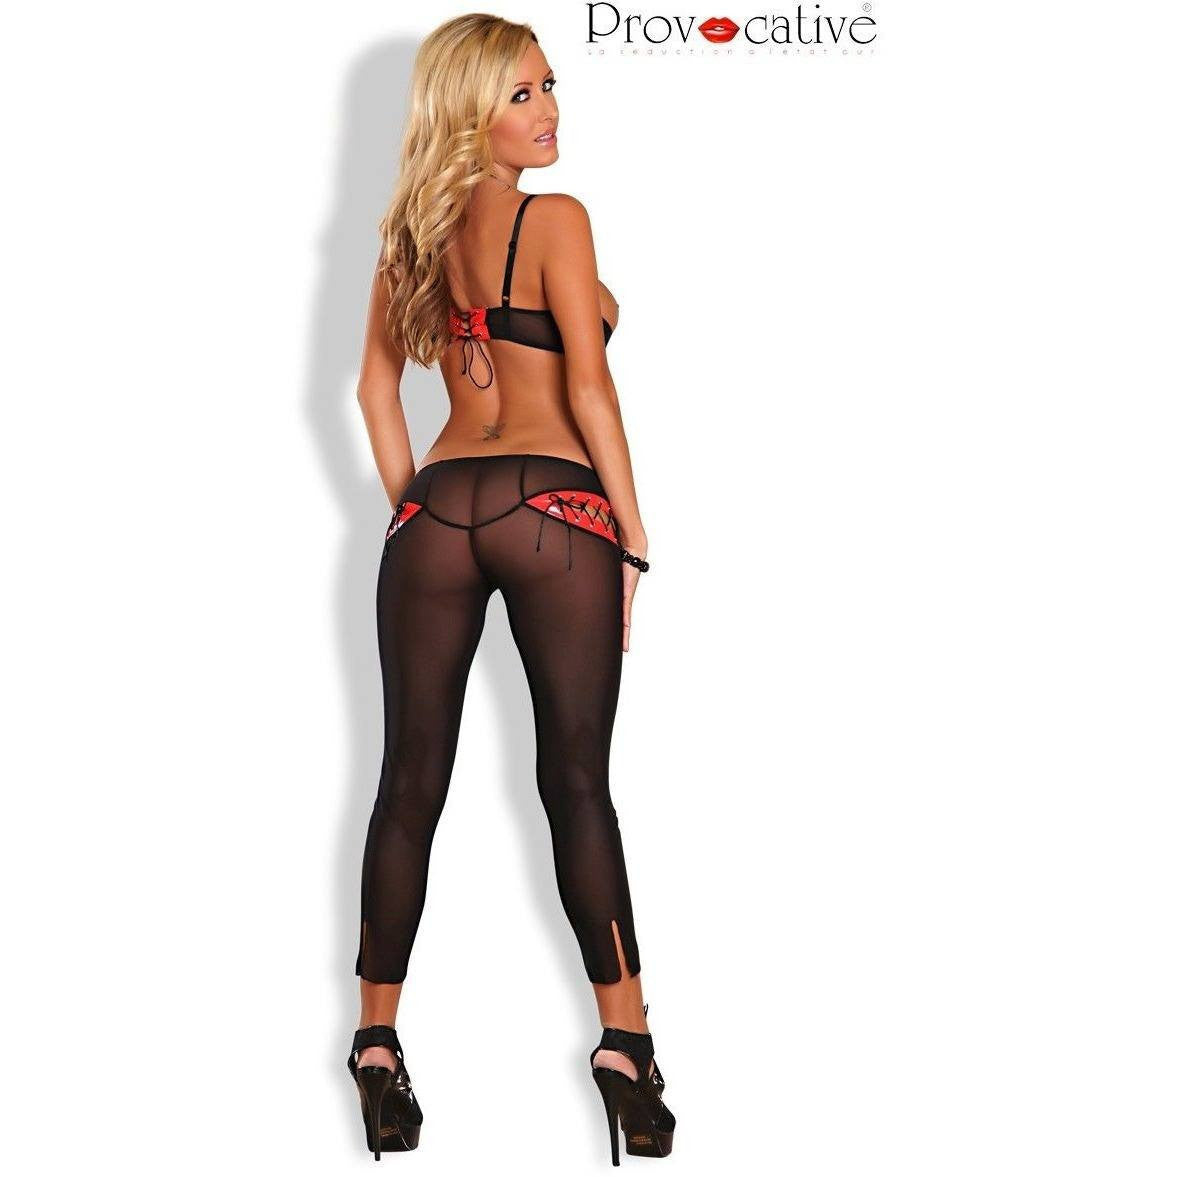 Shelf bra with mesh trouser pants for <span class=money>€29.95 EUR</span> at Flirtywomen